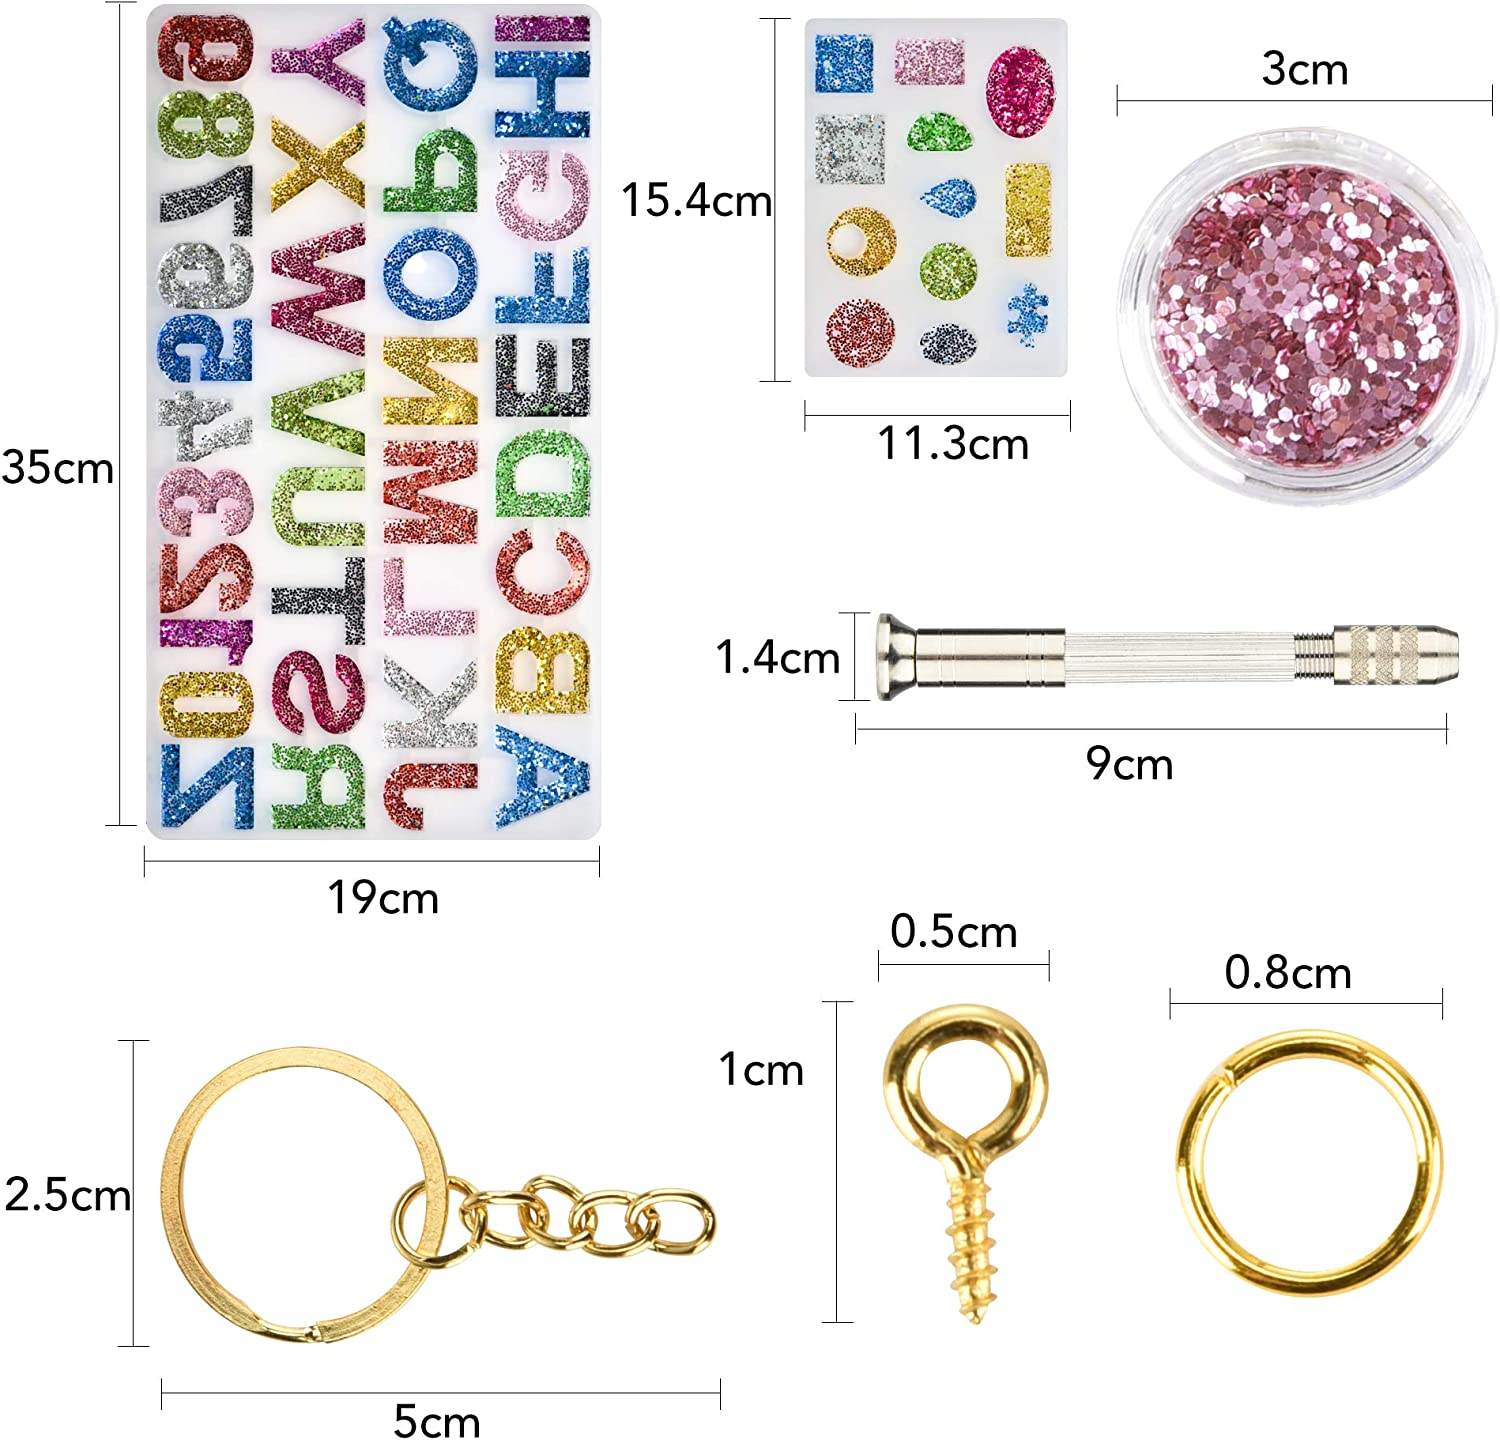 House Number Key Chain Jewelry Craft Making Set Letter Number Resin Mold Tool for Making Jewelry Silicone Resin Molds 237Pcs DIY Alphabet Resin Casting Mold Kit